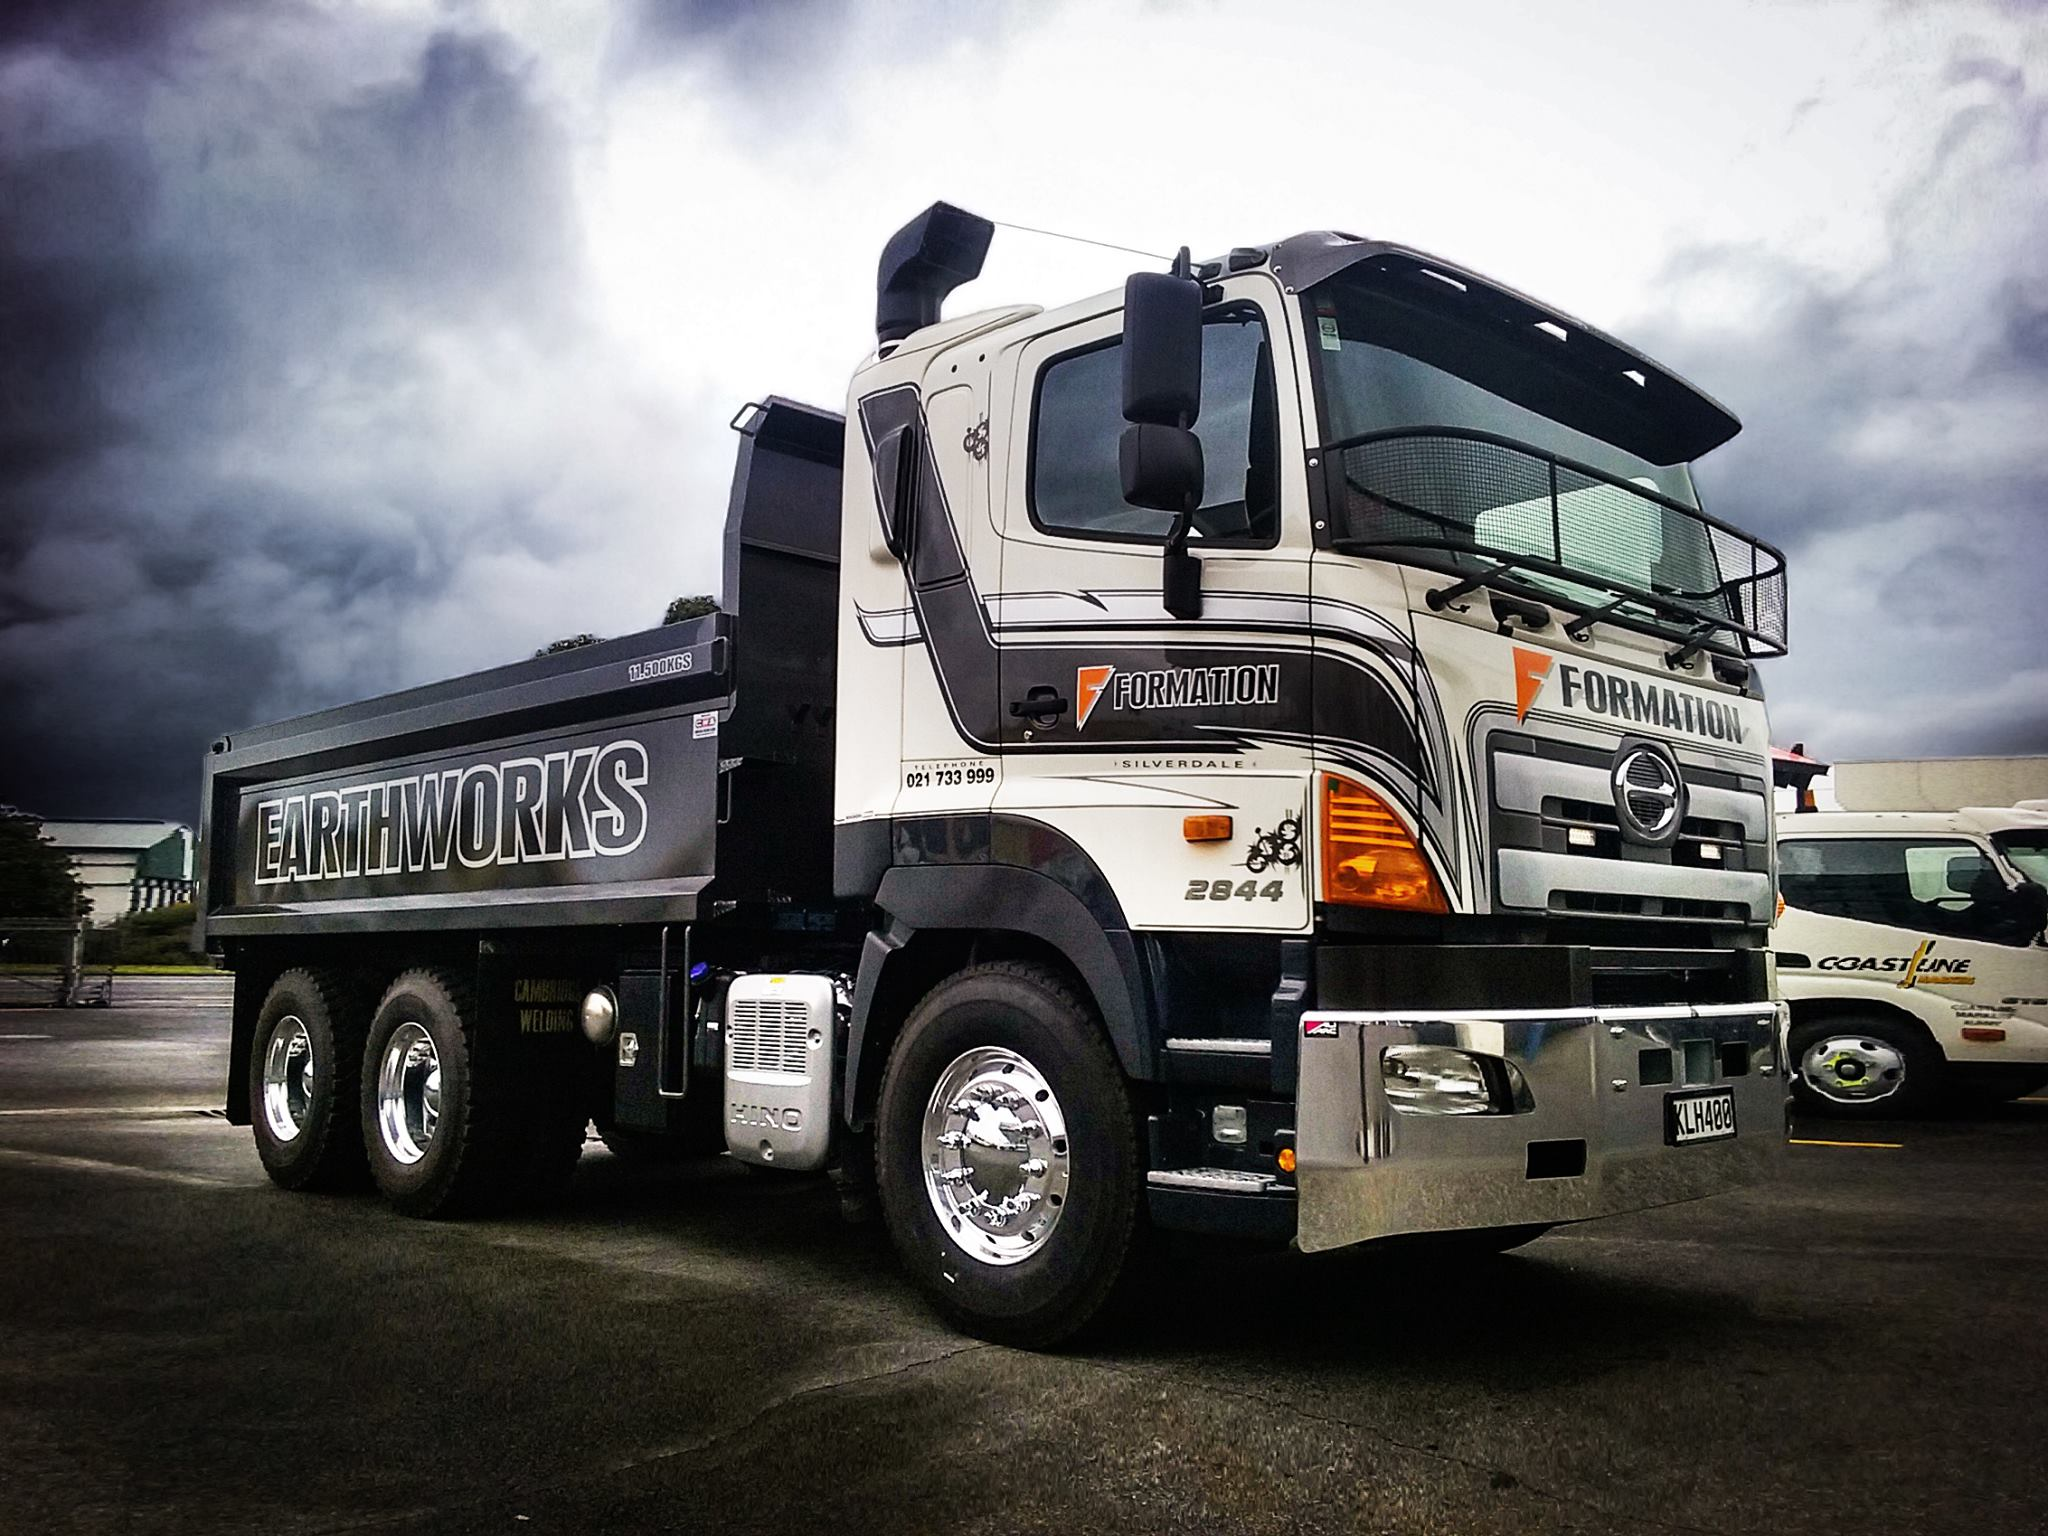 Formation Earthworks - 700 Series FS 6x4 440hp Tipper